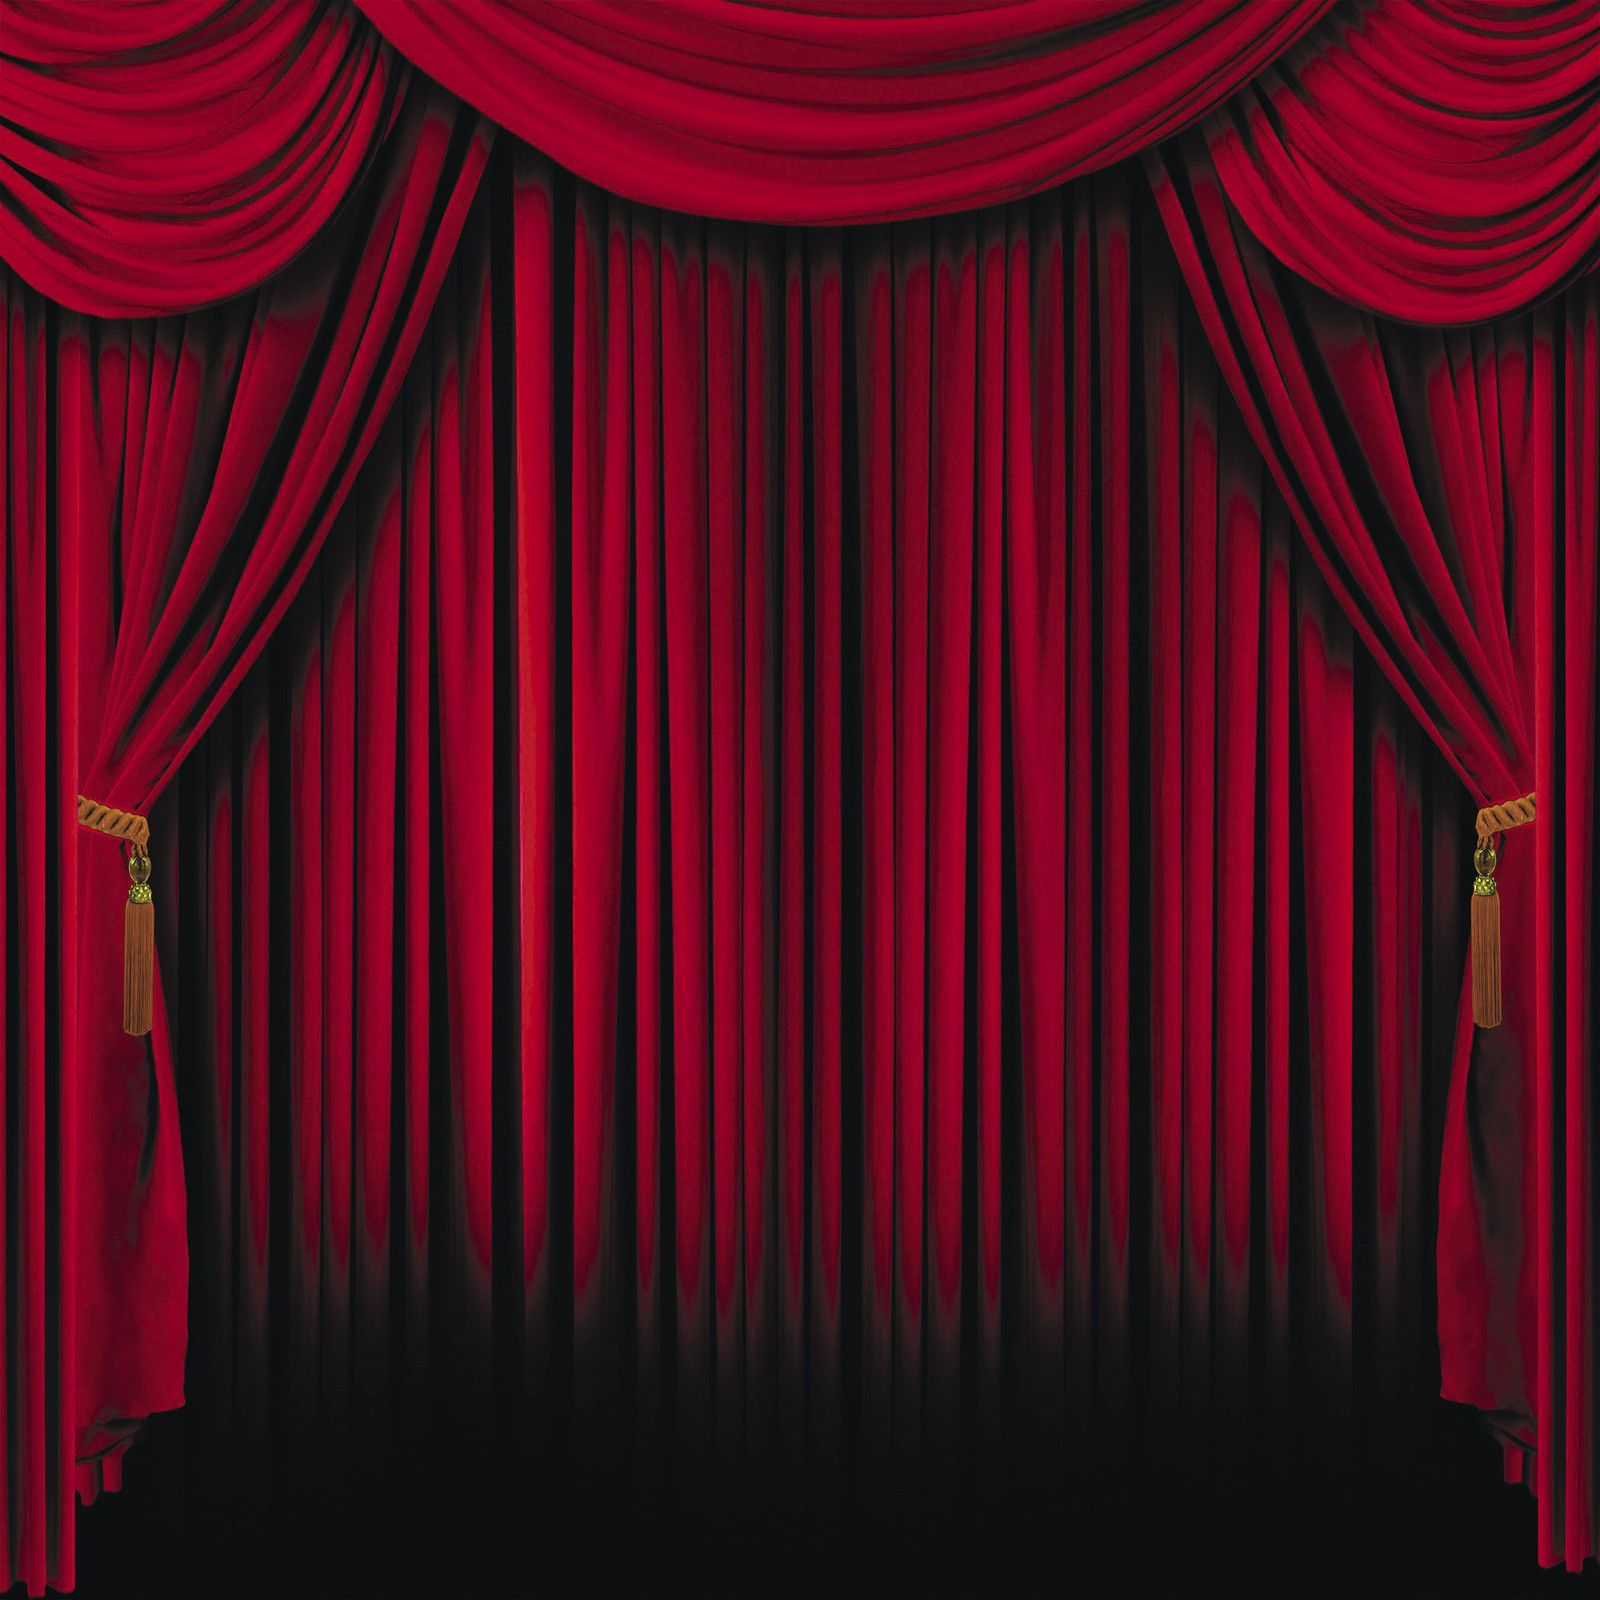 Red Curtain Backdrop Photo Prop Wall Mural Movie Circus Magic Stage ...